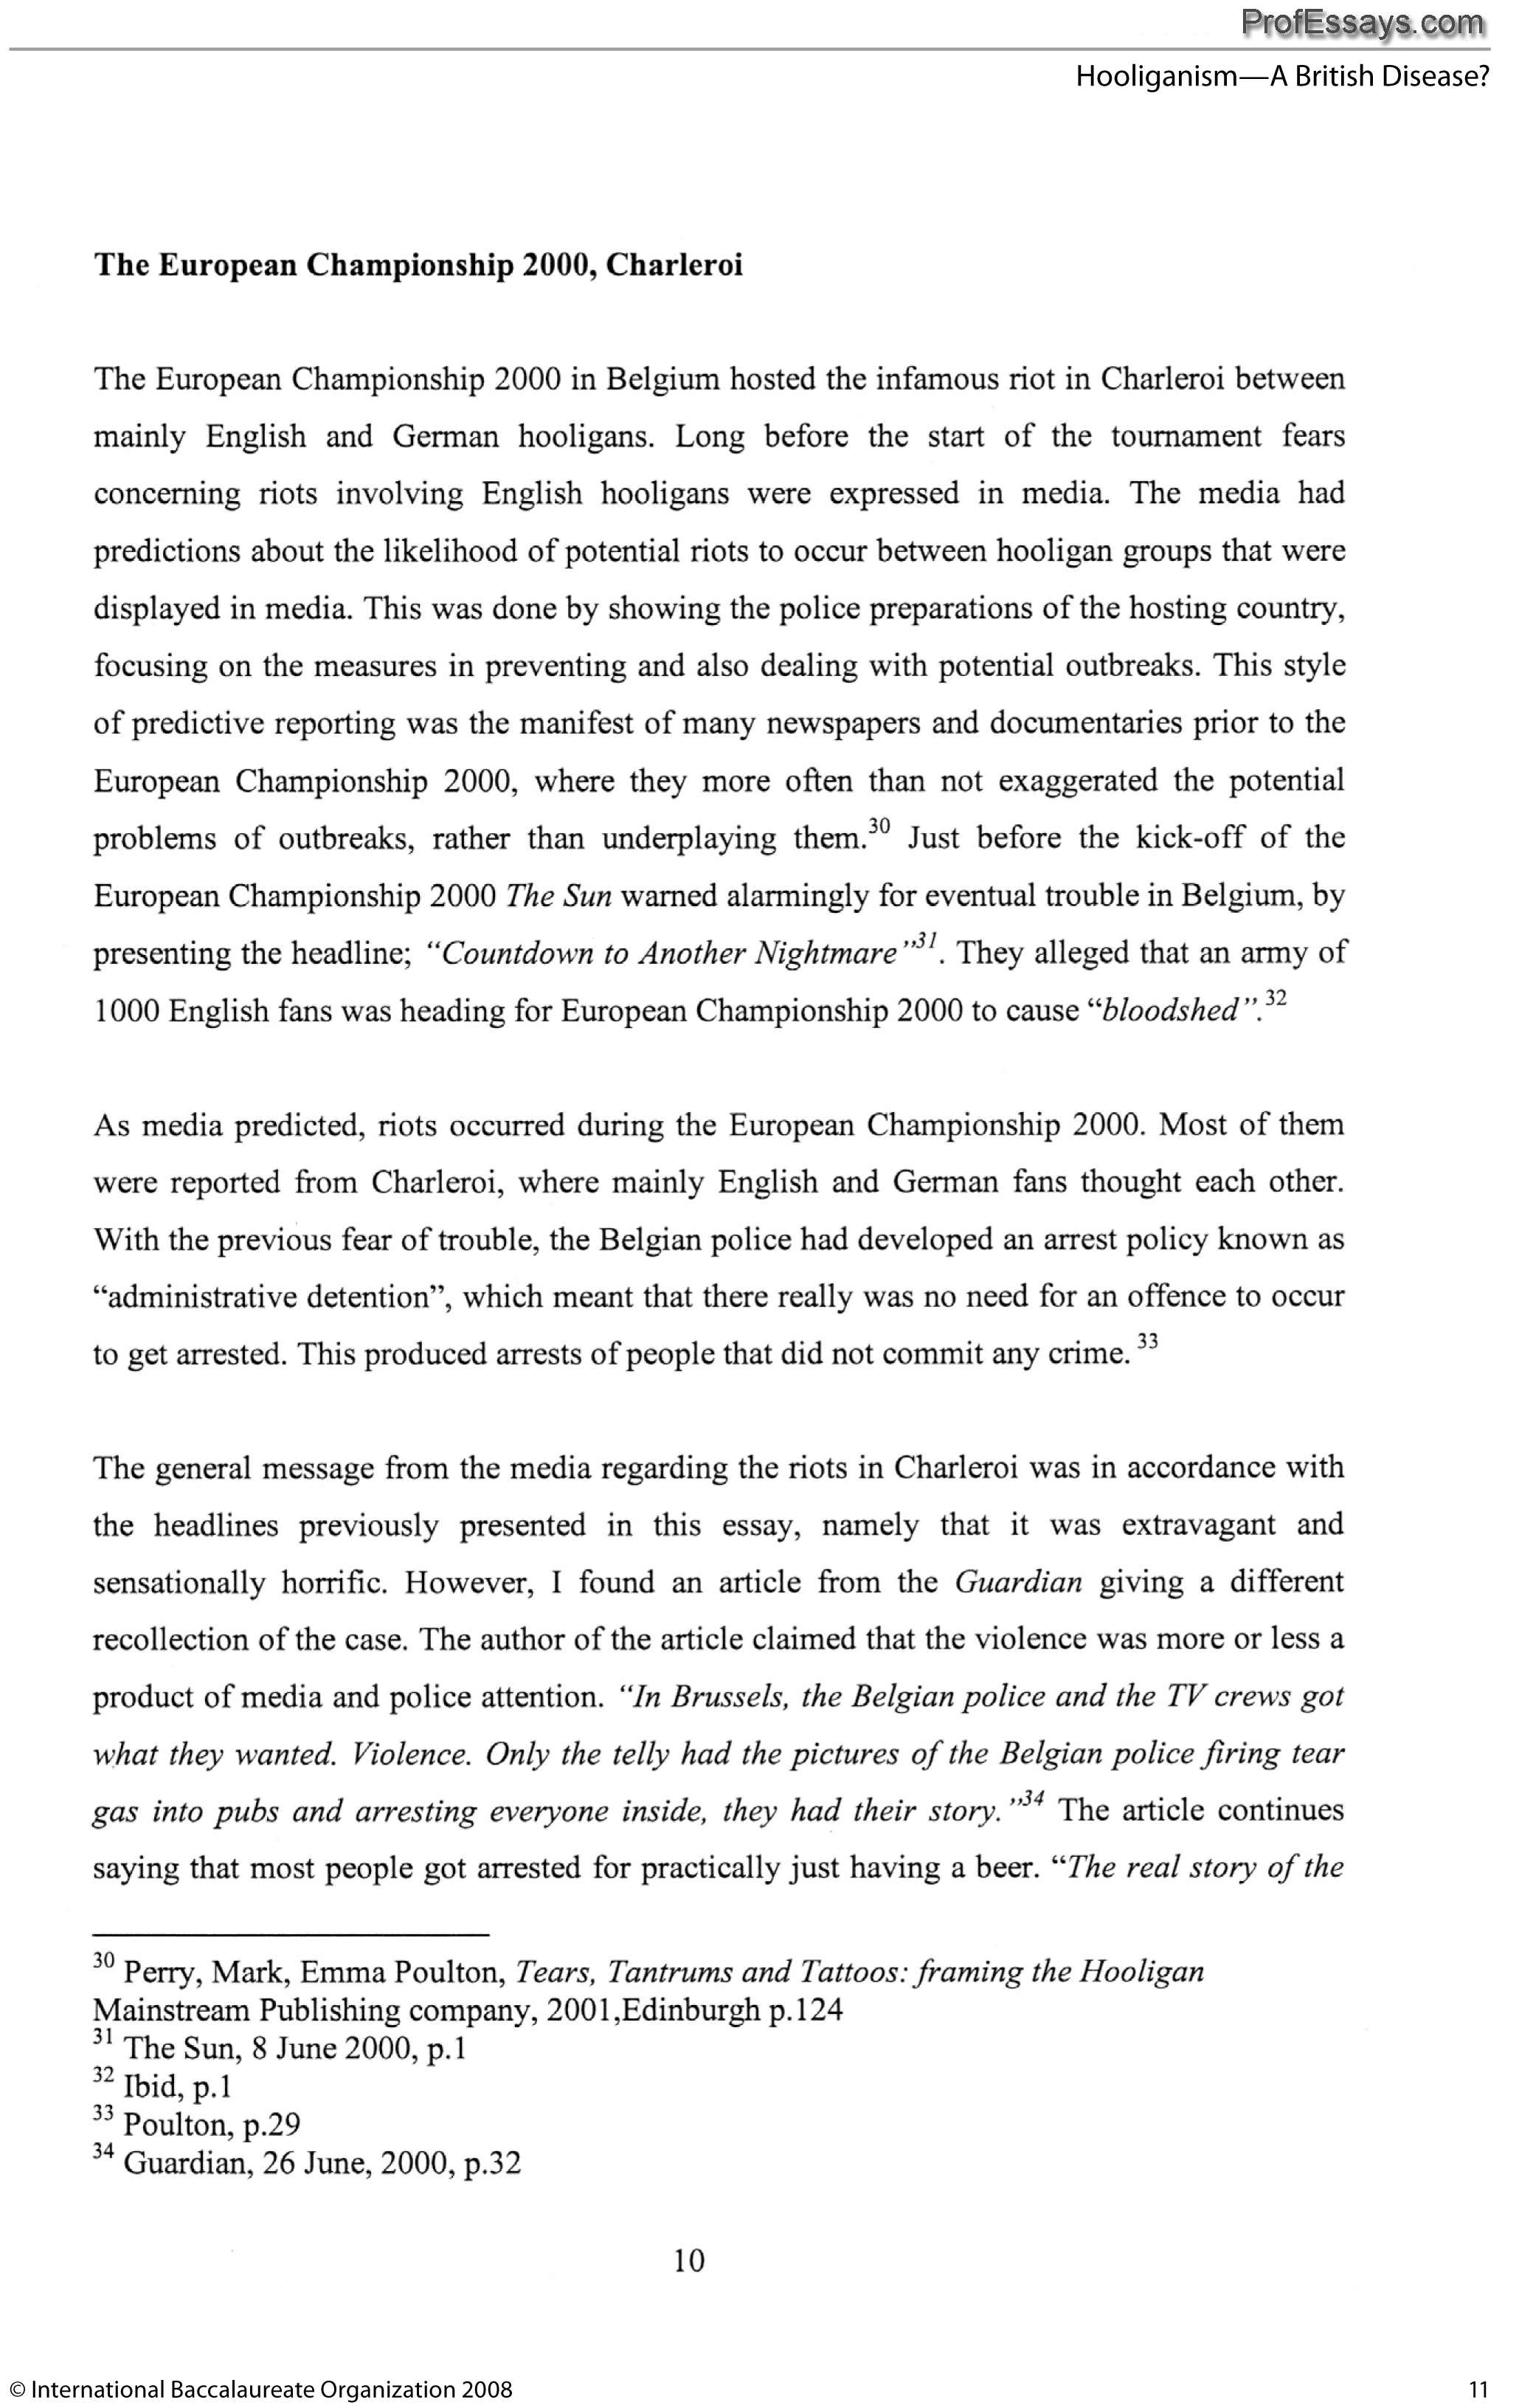 Example Of An English Extended Essay